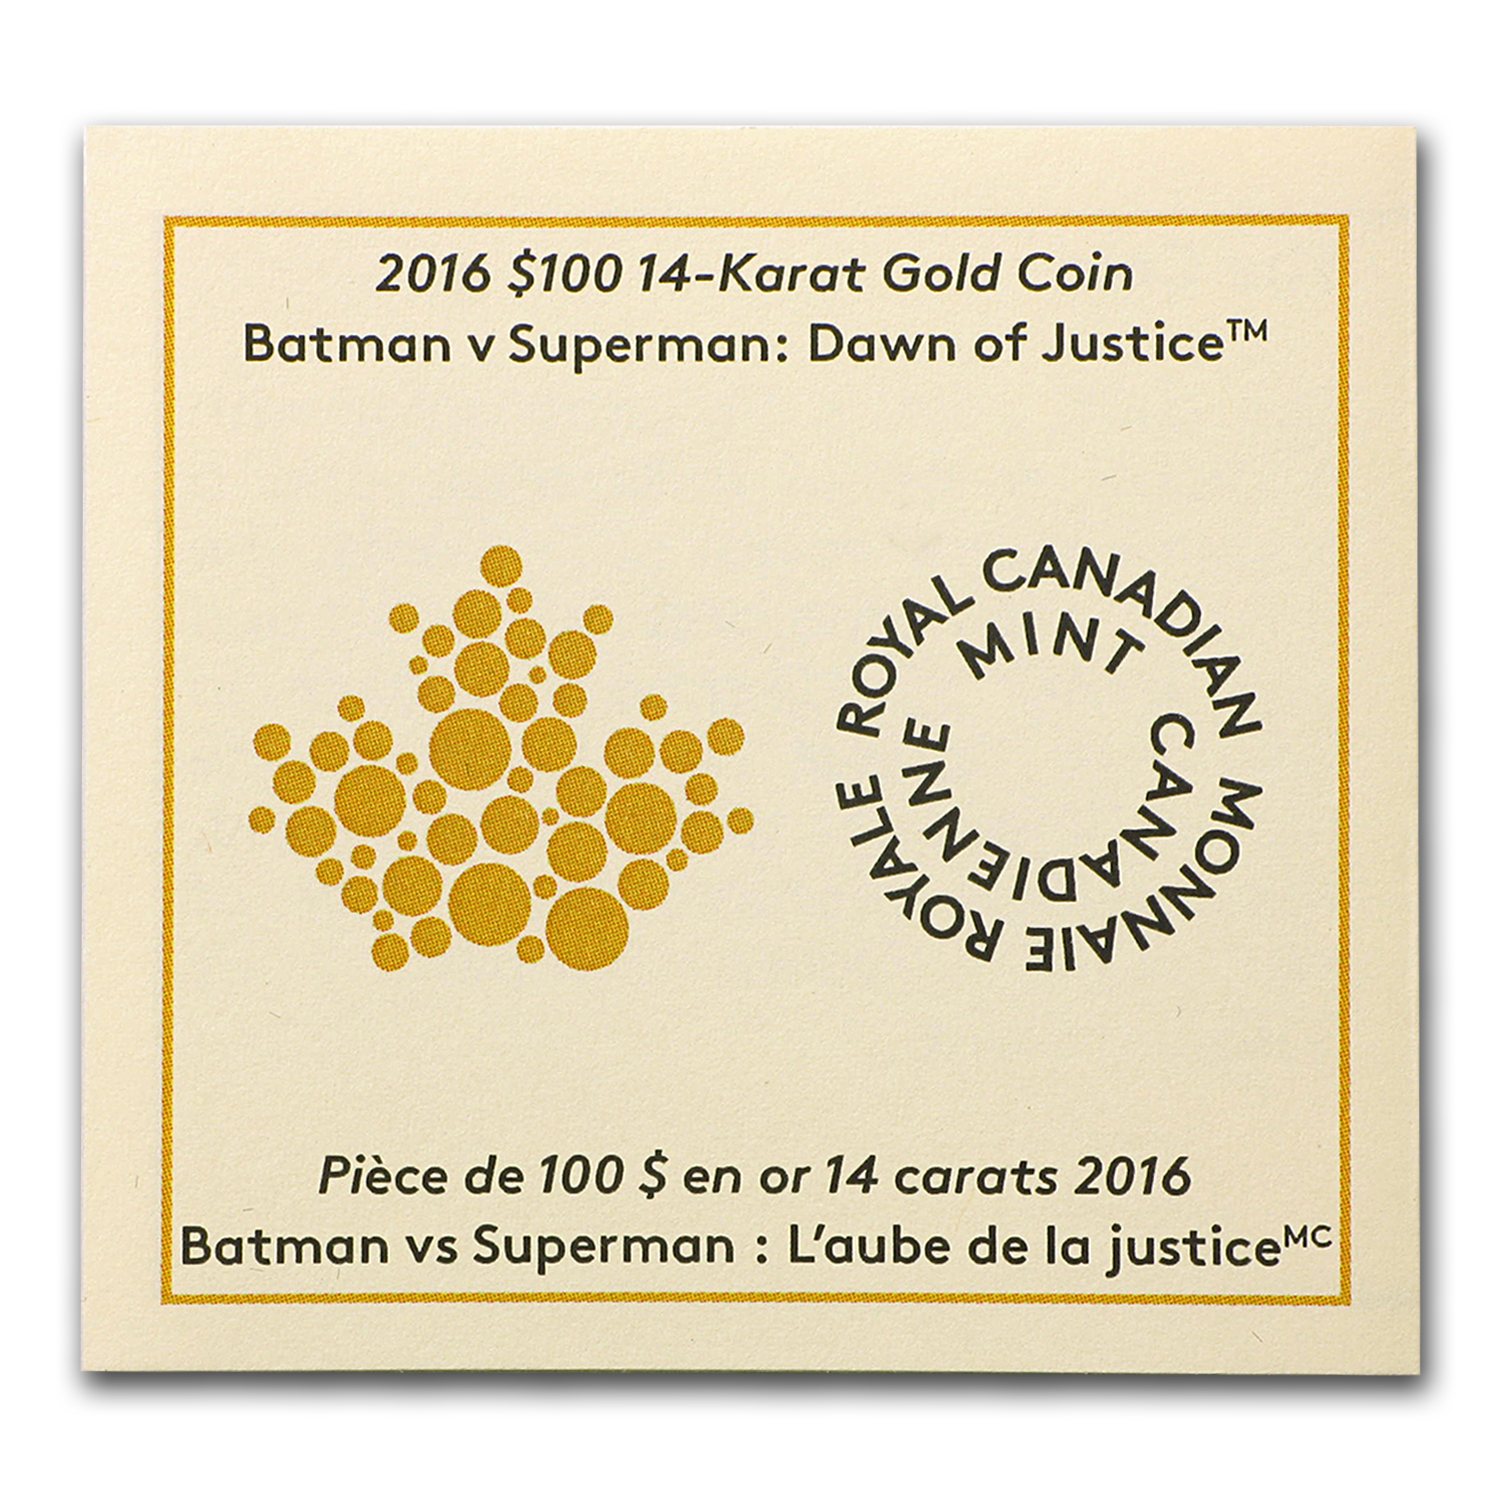 2016 Canada Proof Gold $100 Batman v Superman: Dawn of Justice